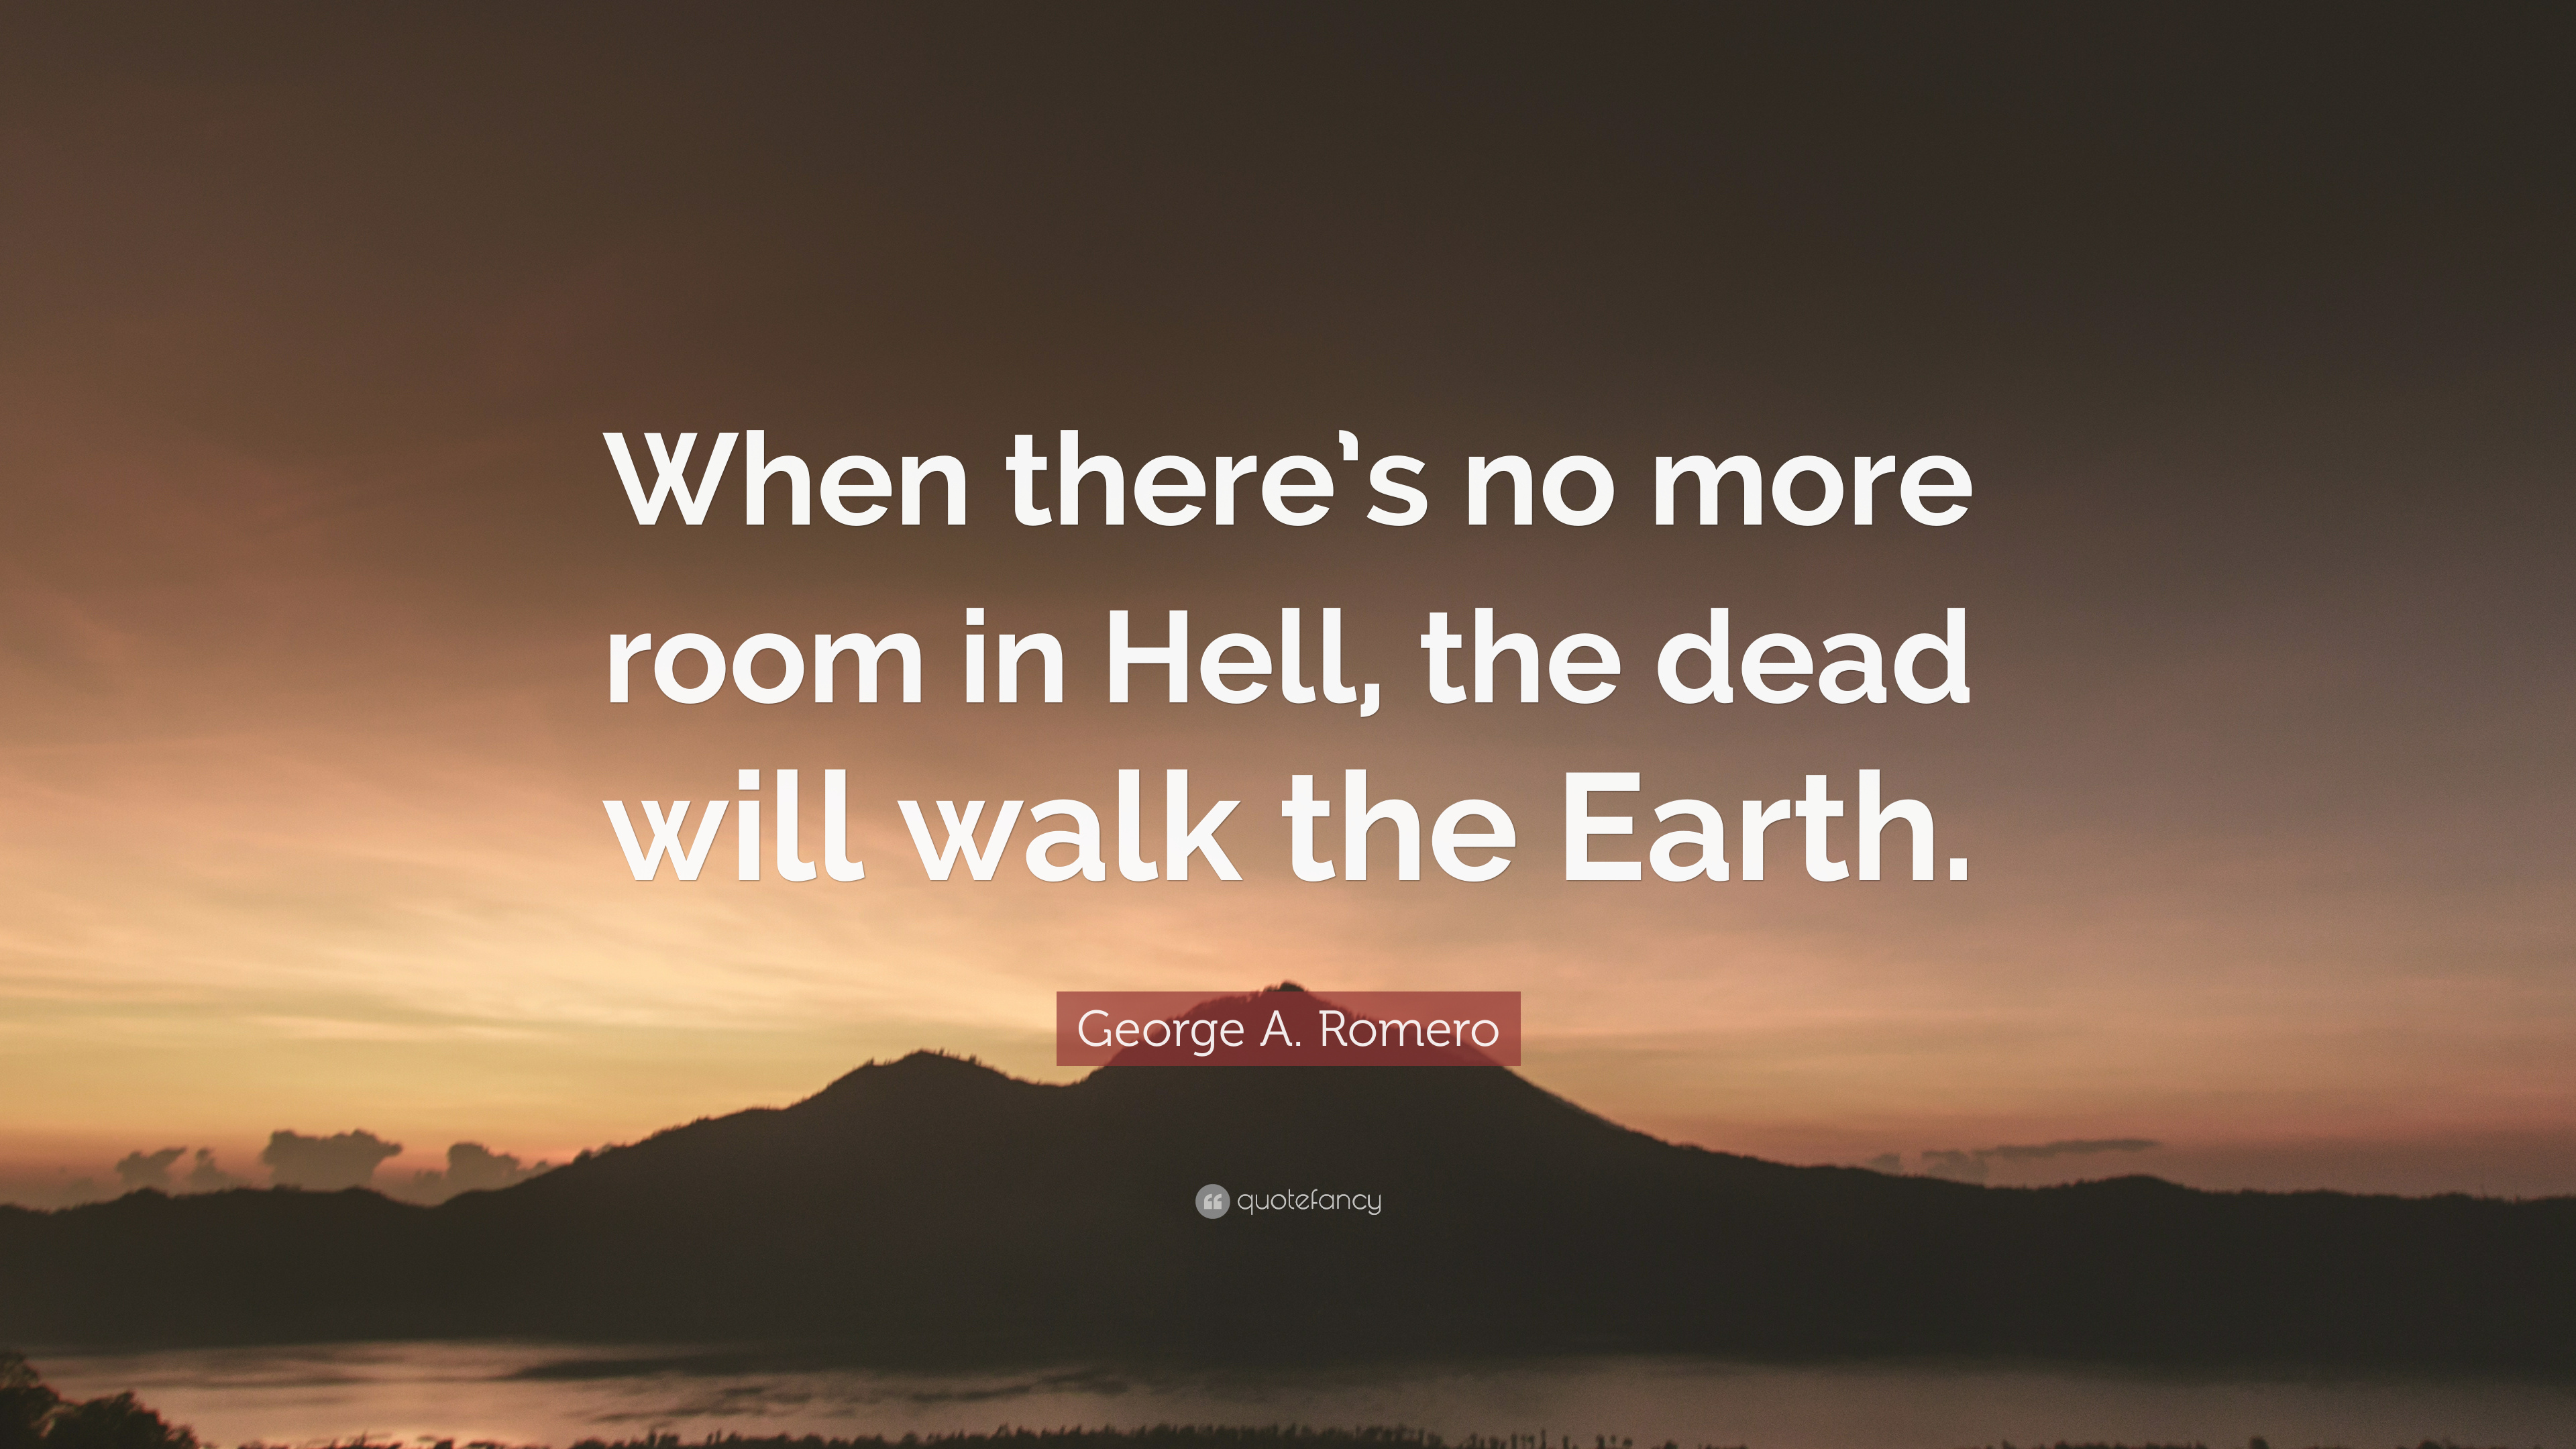 George A Romero Quote When There S No More Room In Hell The